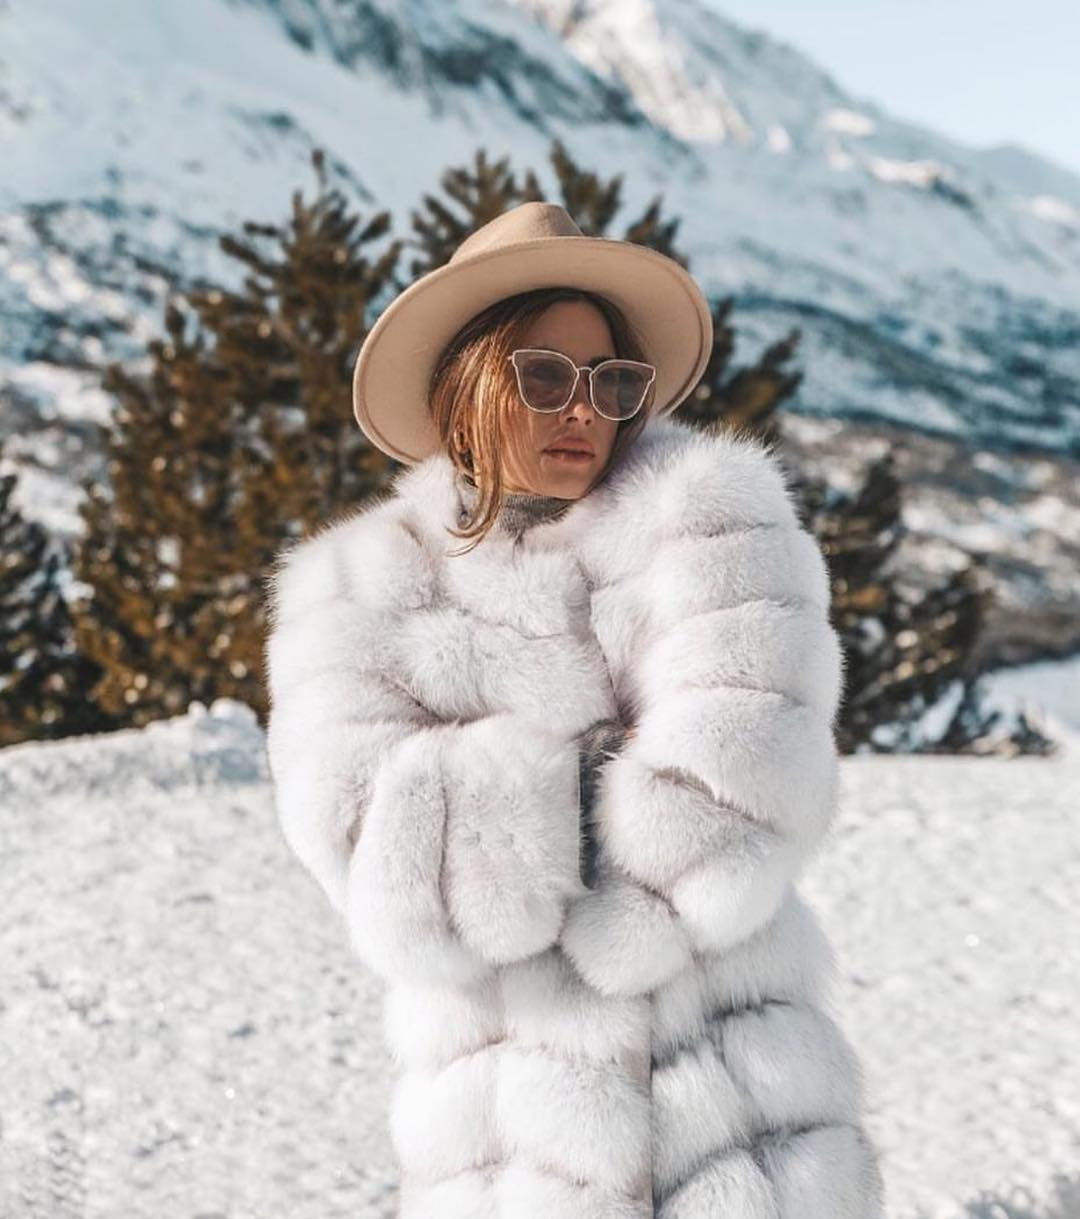 Big White Fur Coat And Fedora Hat For Winter 2020